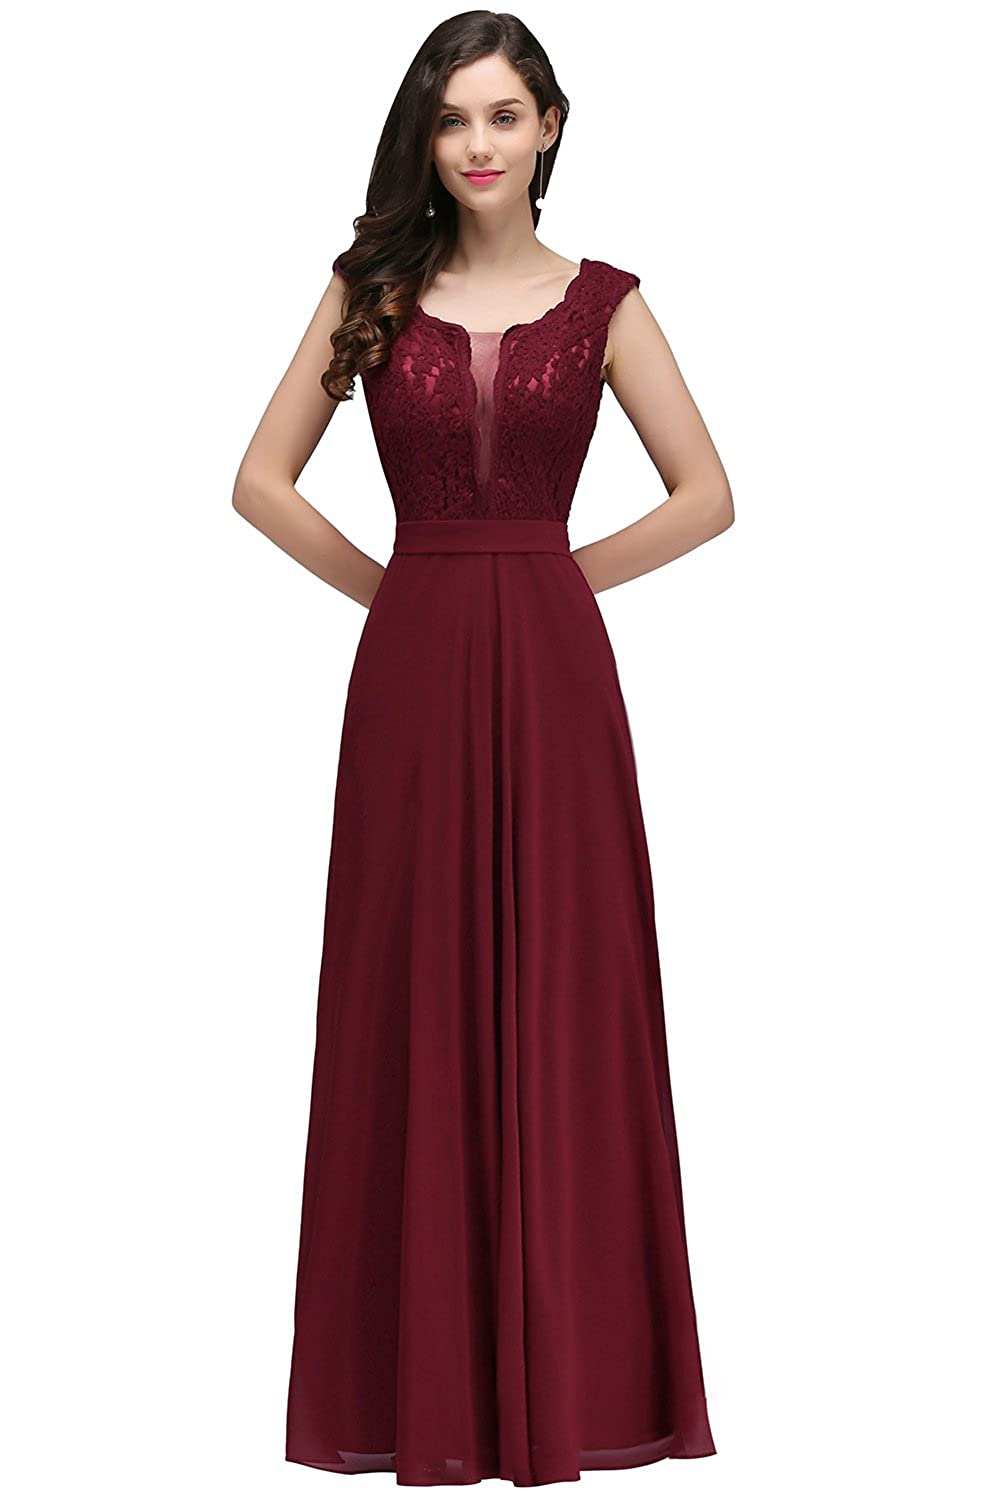 5f0f96d1d4a Start with this elegant yet sexy long evening formal dress which can be  used as gala